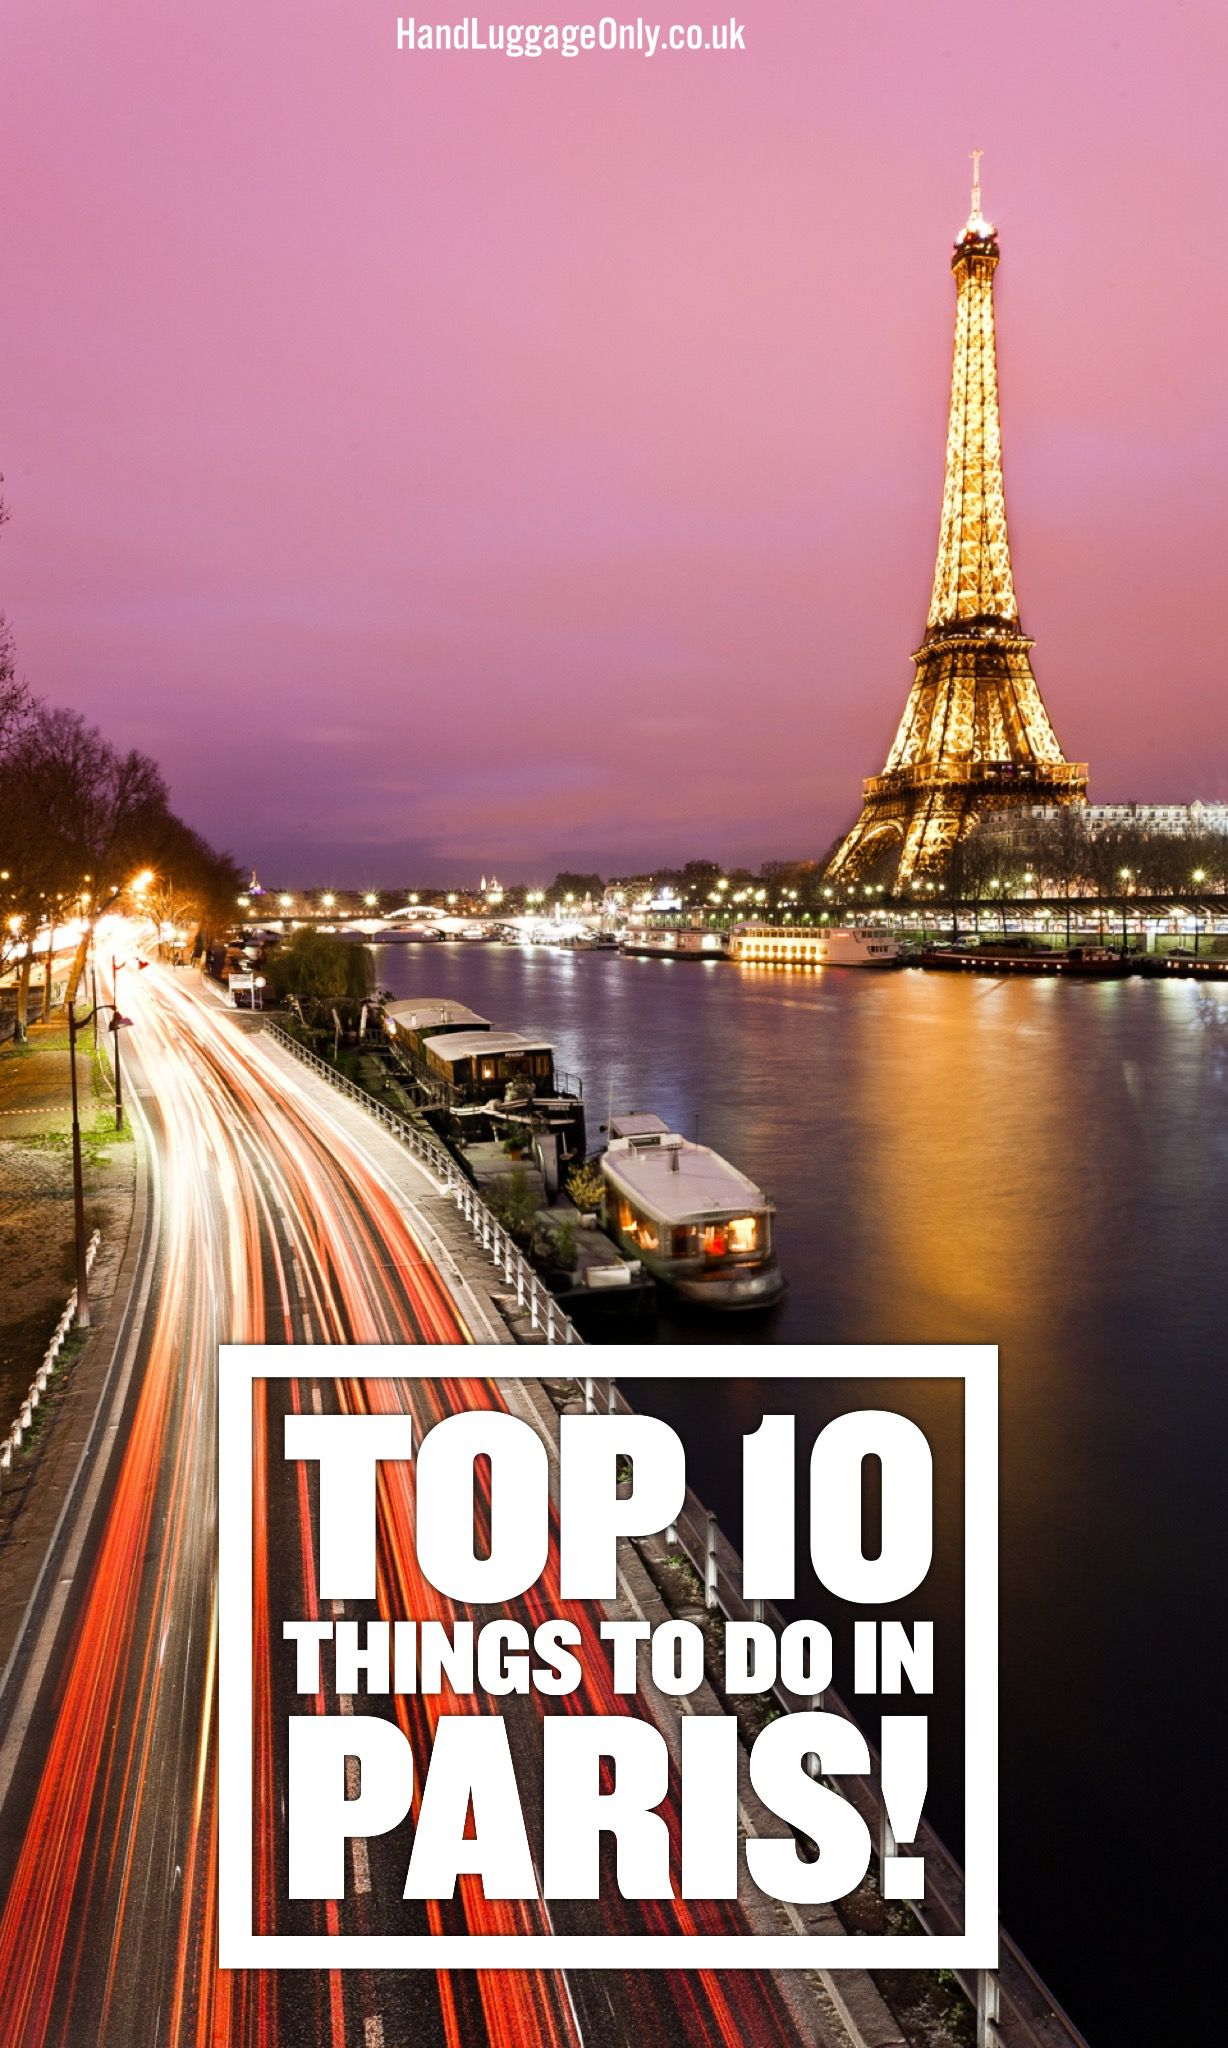 Top 10 things to do in Paris...